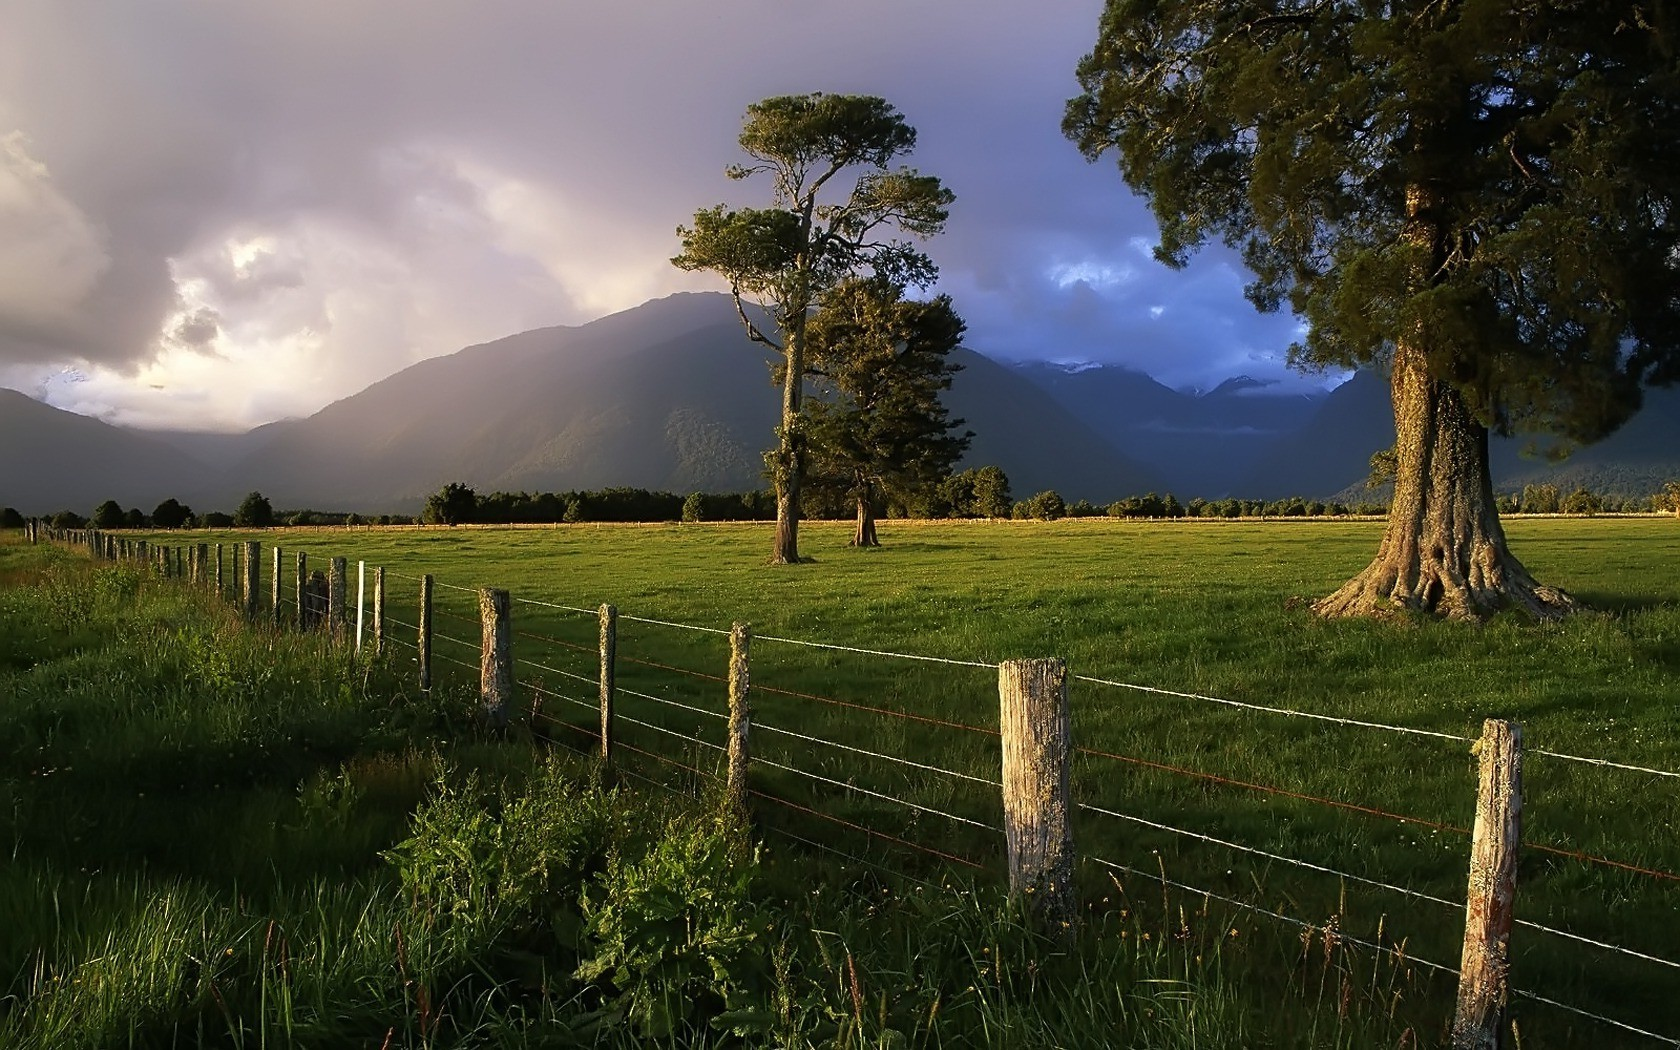 Nature Full Hd 3d Wallpapers 1920x1080 Nature Fence Storm Trees Mountain New Zealand